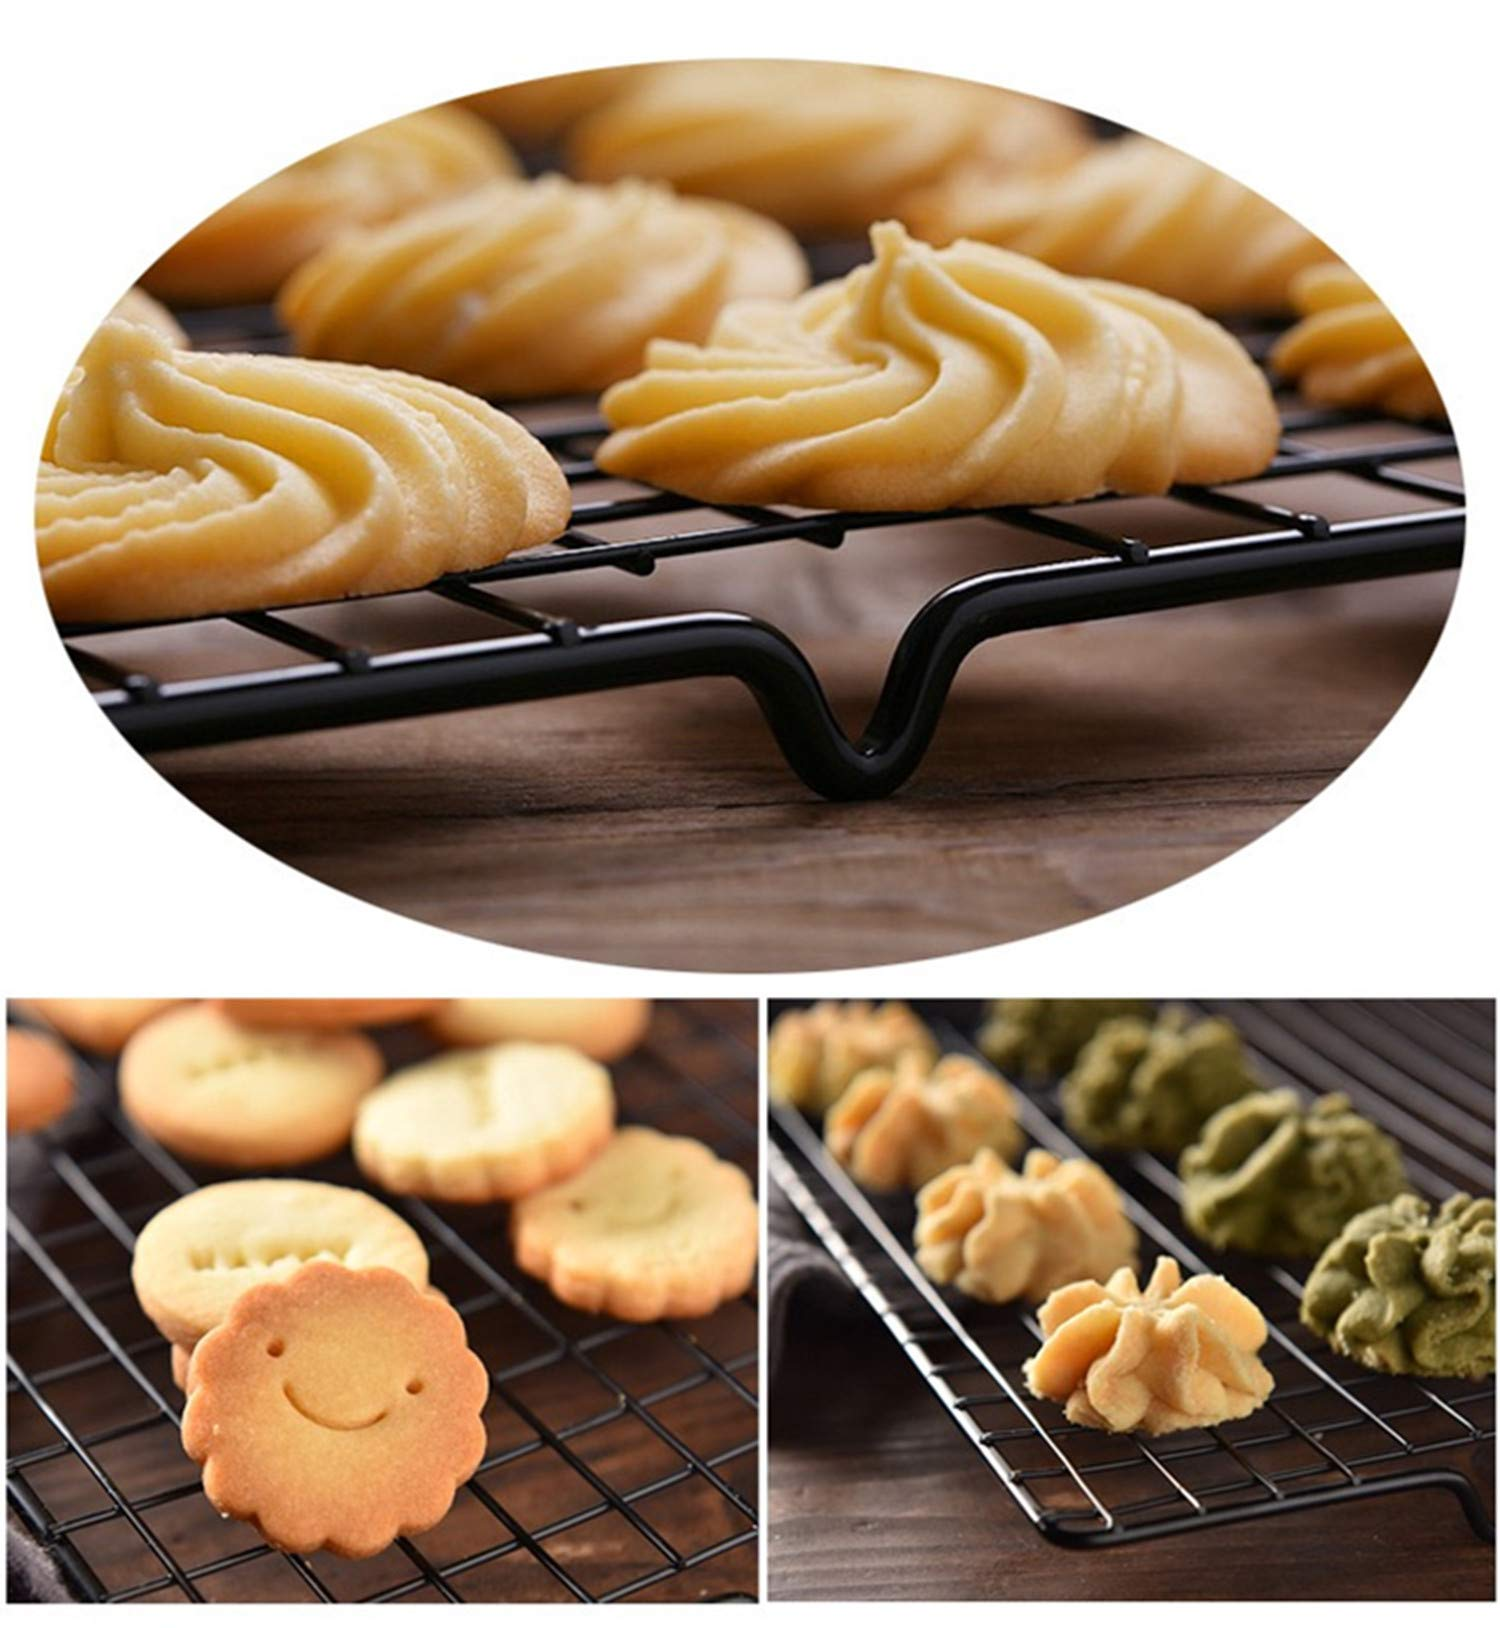 Mokpi Oven Safe Non-Stick Cooling Racks, Size 16''x10'',Thick Wire Baking Rack Heavy Duty Commercial Quality Rack (Set of 4) by Mokpi (Image #6)